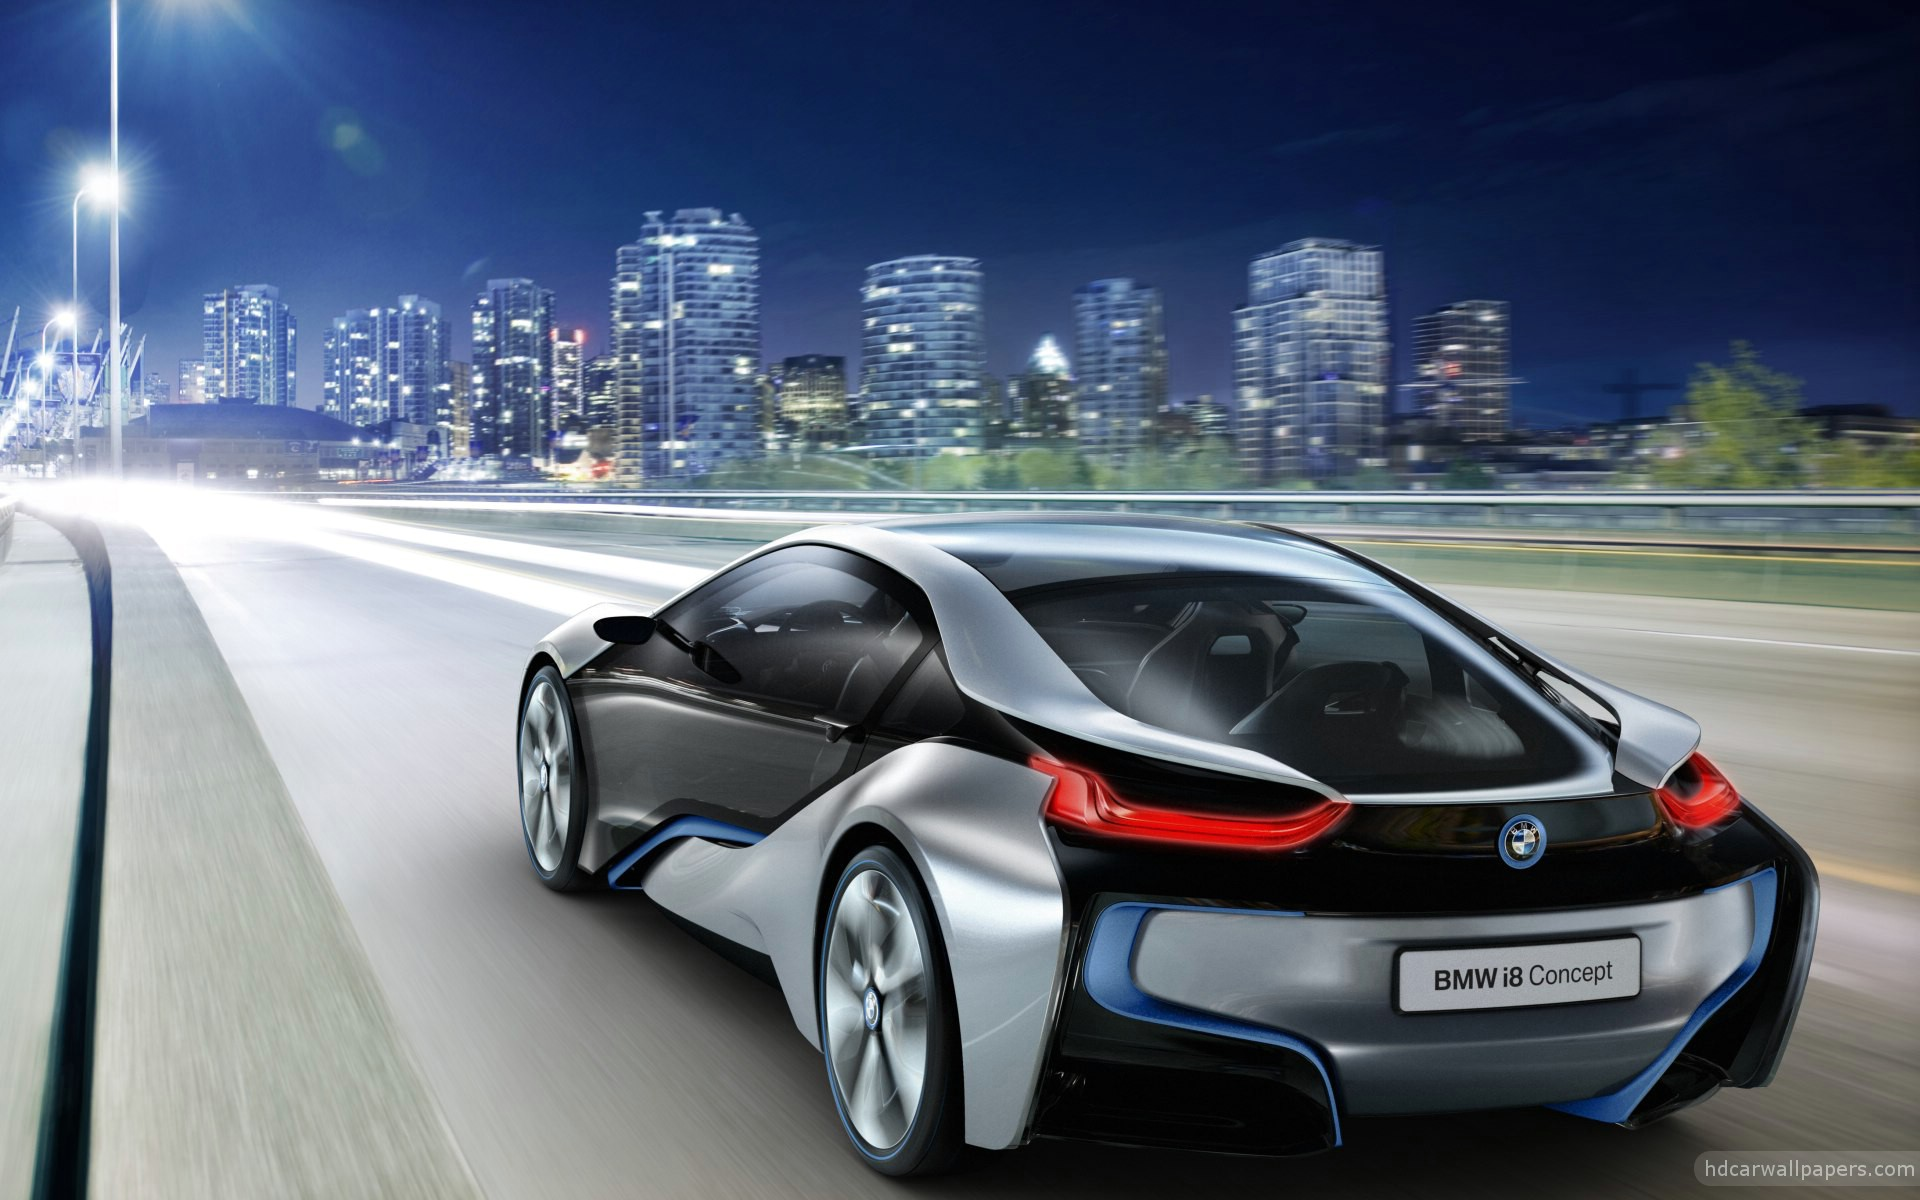 2012 Bmw I8 Concept 4 Wallpaper Hd Car Wallpapers Id 2156